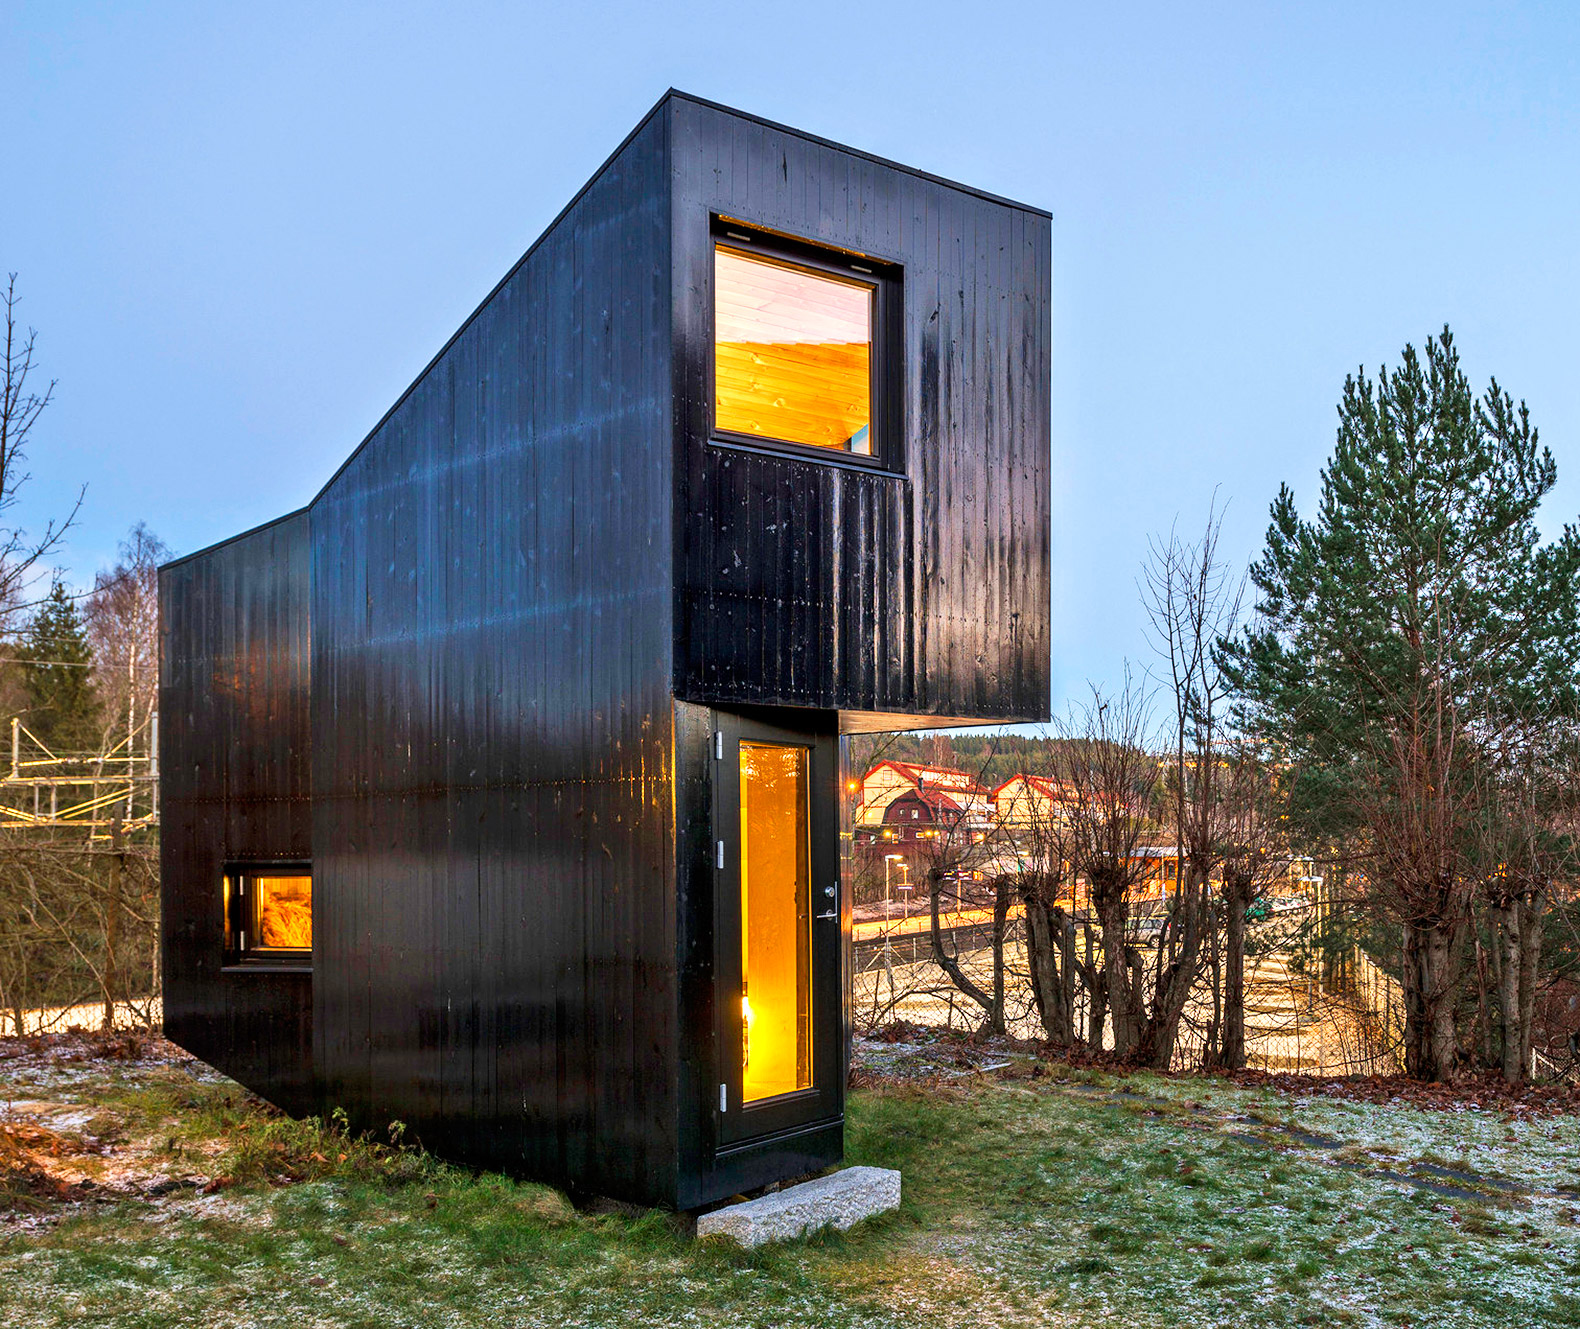 content_plainmagazine-Writers-Cottage-Jarmund-Vigsnaes-AS-Architects.jpg